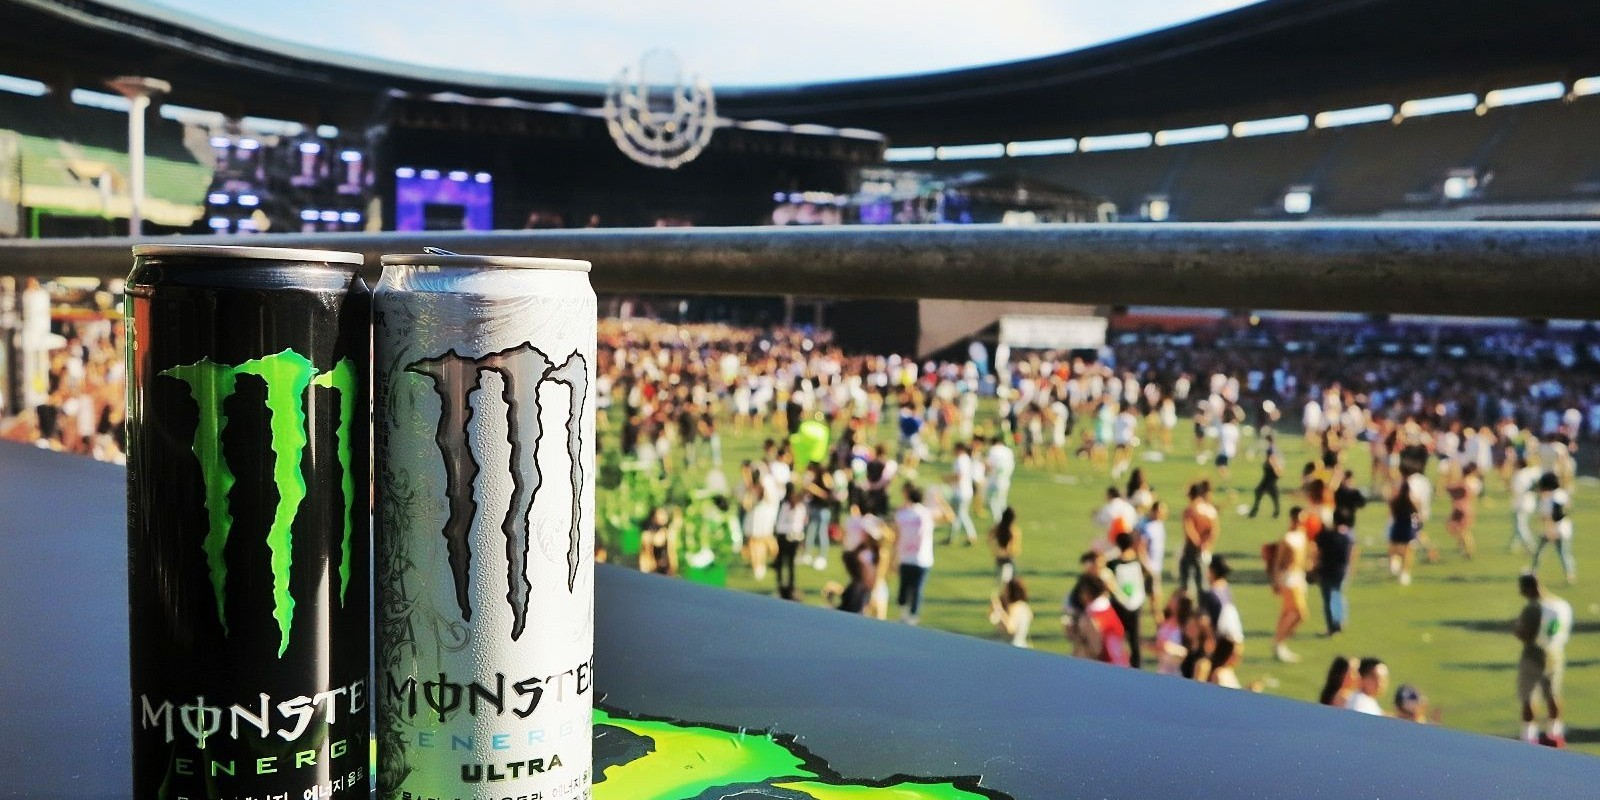 Monster Energy sponsorship at Ultra Korea 2017.